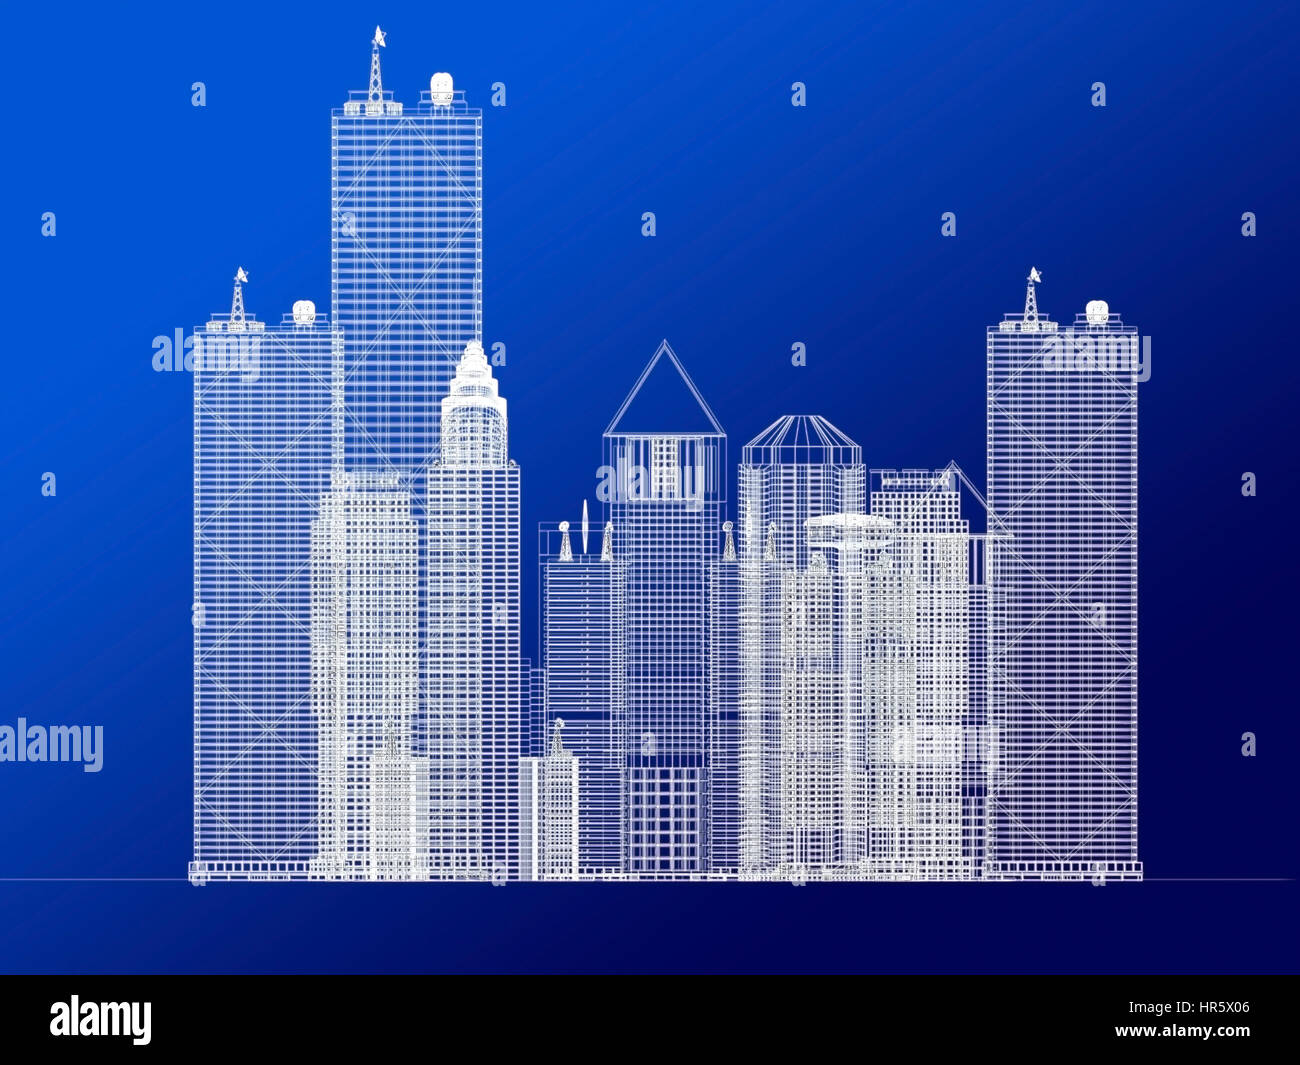 Architecture blueprint of corporate buildings over a blue background architecture blueprint of corporate buildings over a blue background malvernweather Gallery